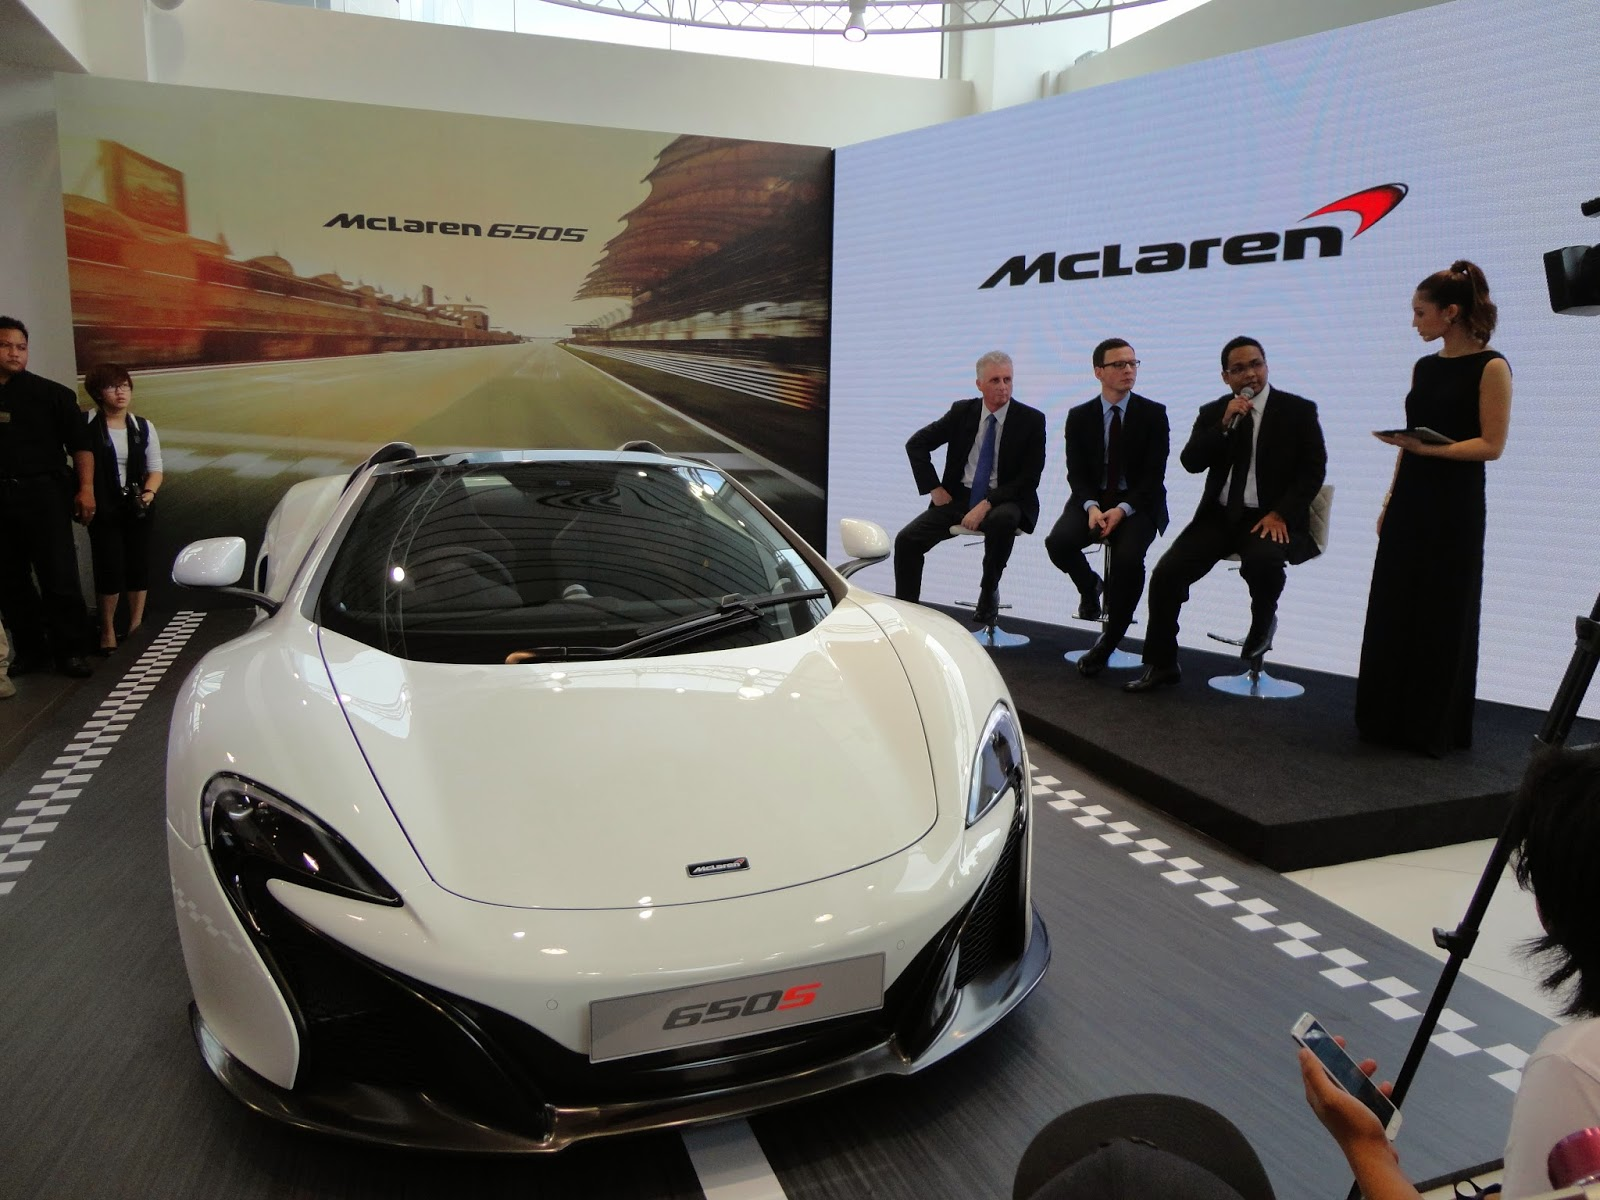 new car release malaysia 2014MotoringMalaysia New car launch McLaren launches the McLaren